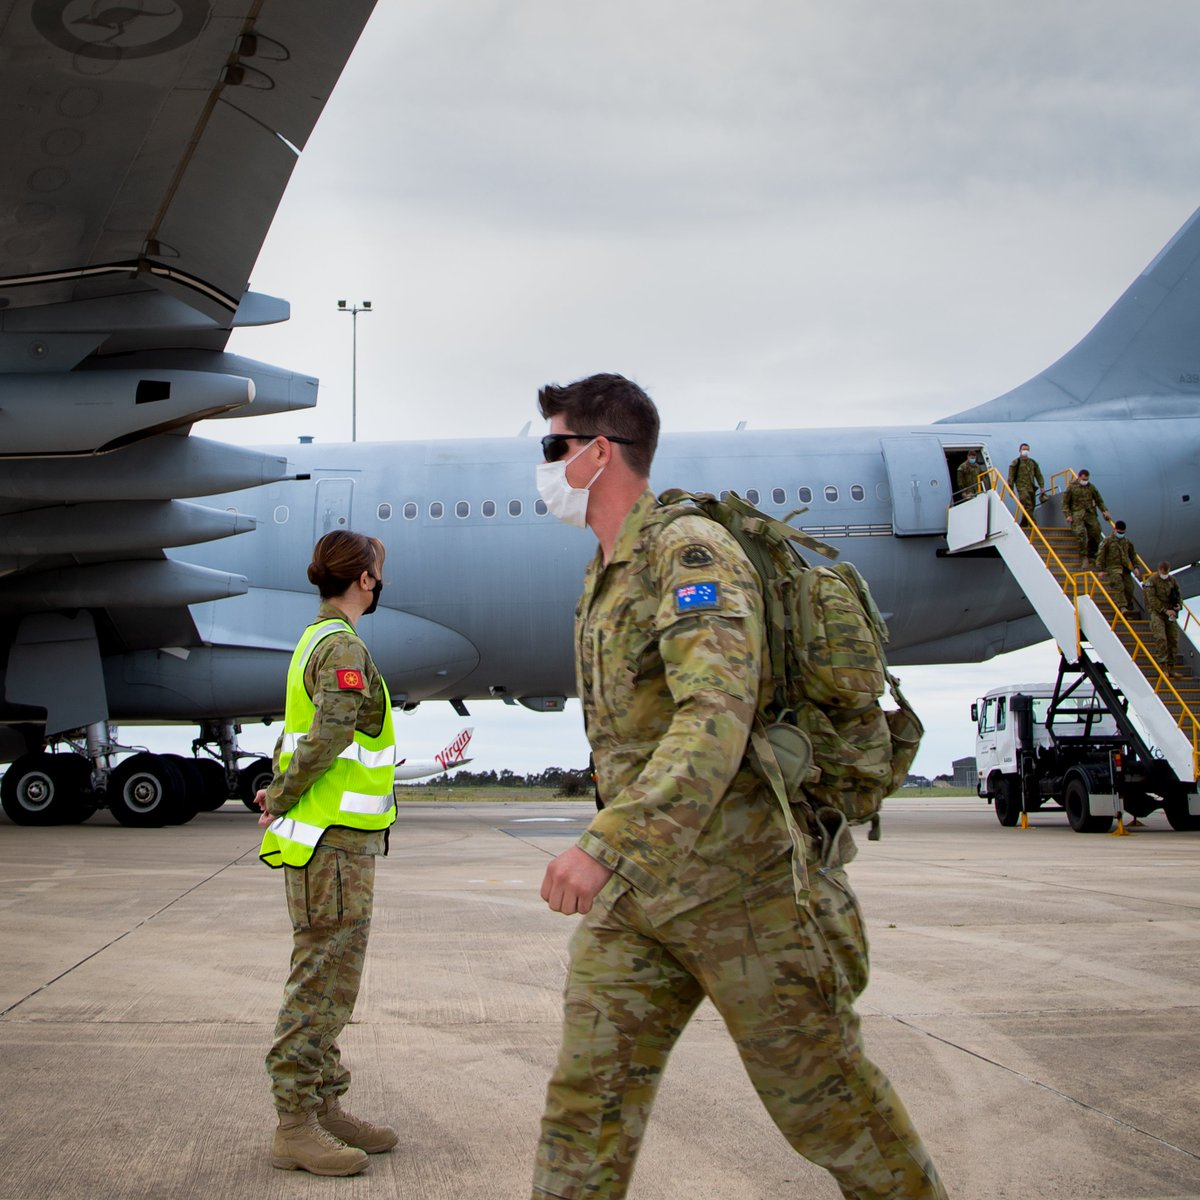 #YourADF from @AustralianArmy's 3rd Brigade, based in Townsville, have been deployed to Victoria as part of the coronavirus response to provide a range of personnel, planning & logistics support. Thank you for your service. #TYFYS #OurPeople. @ChiefAusArmy @DeptDefence https://t.co/oPravSiNXB